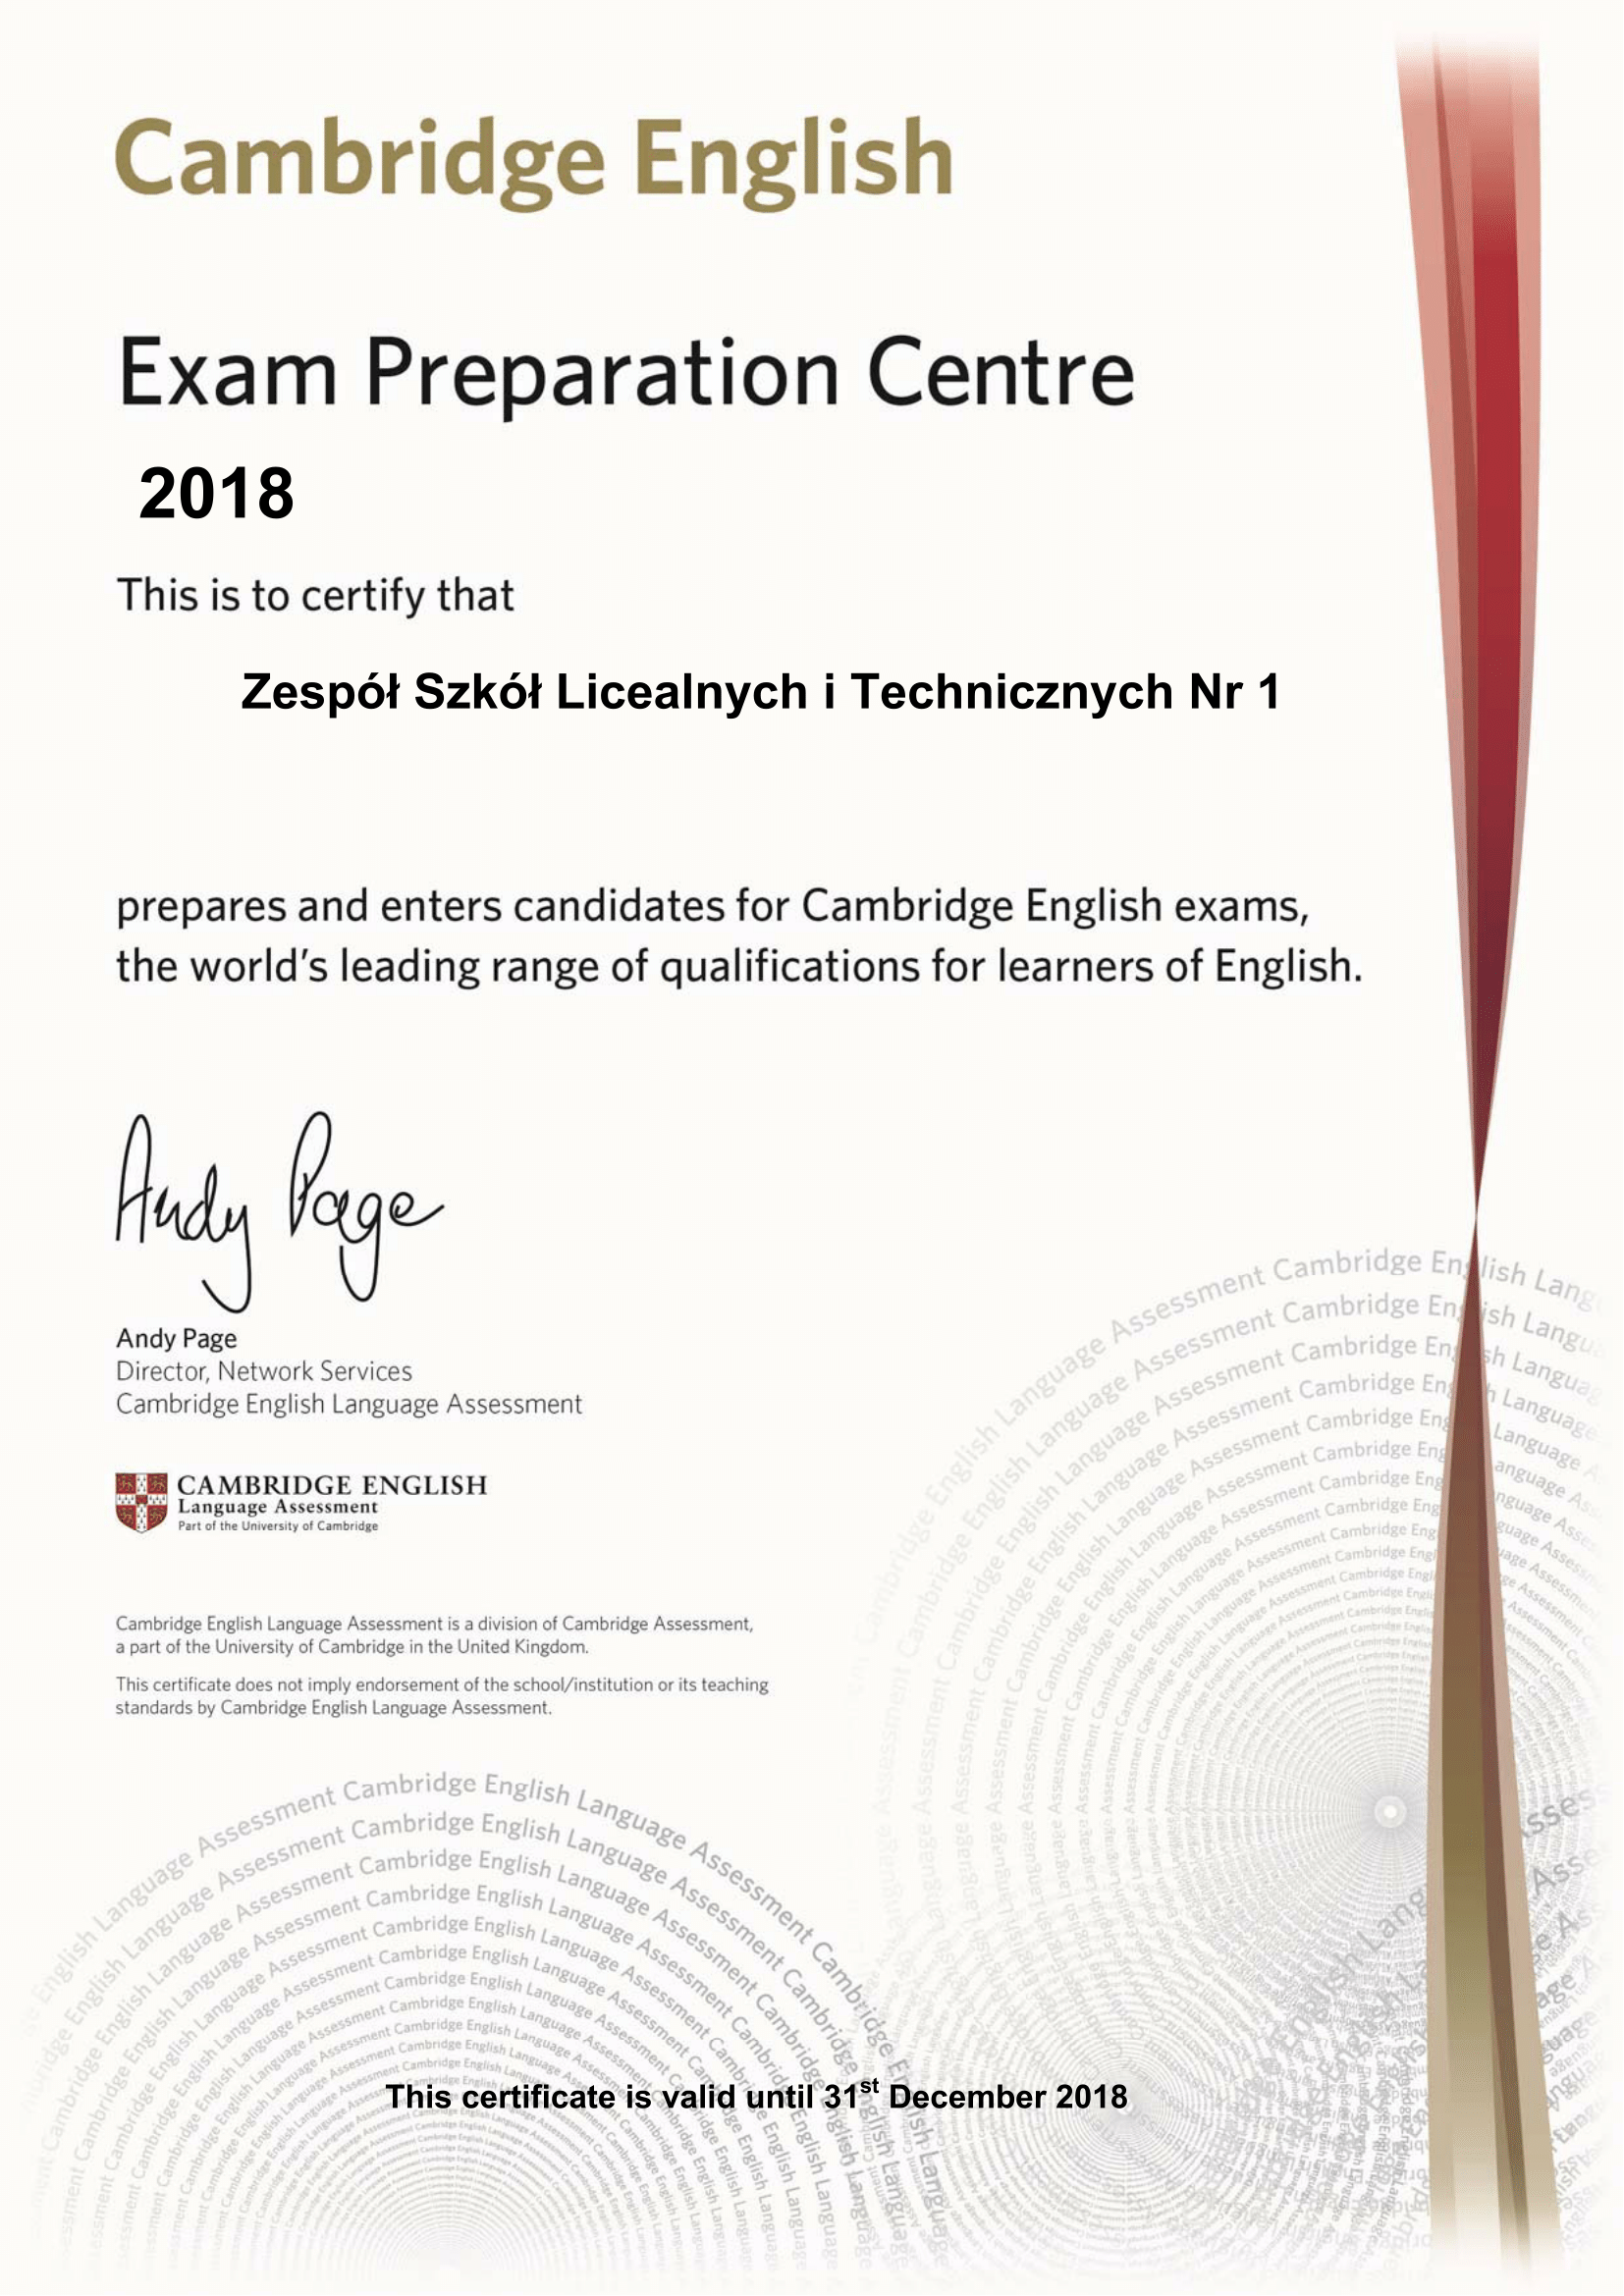 2018 Preparation Centre Certificate